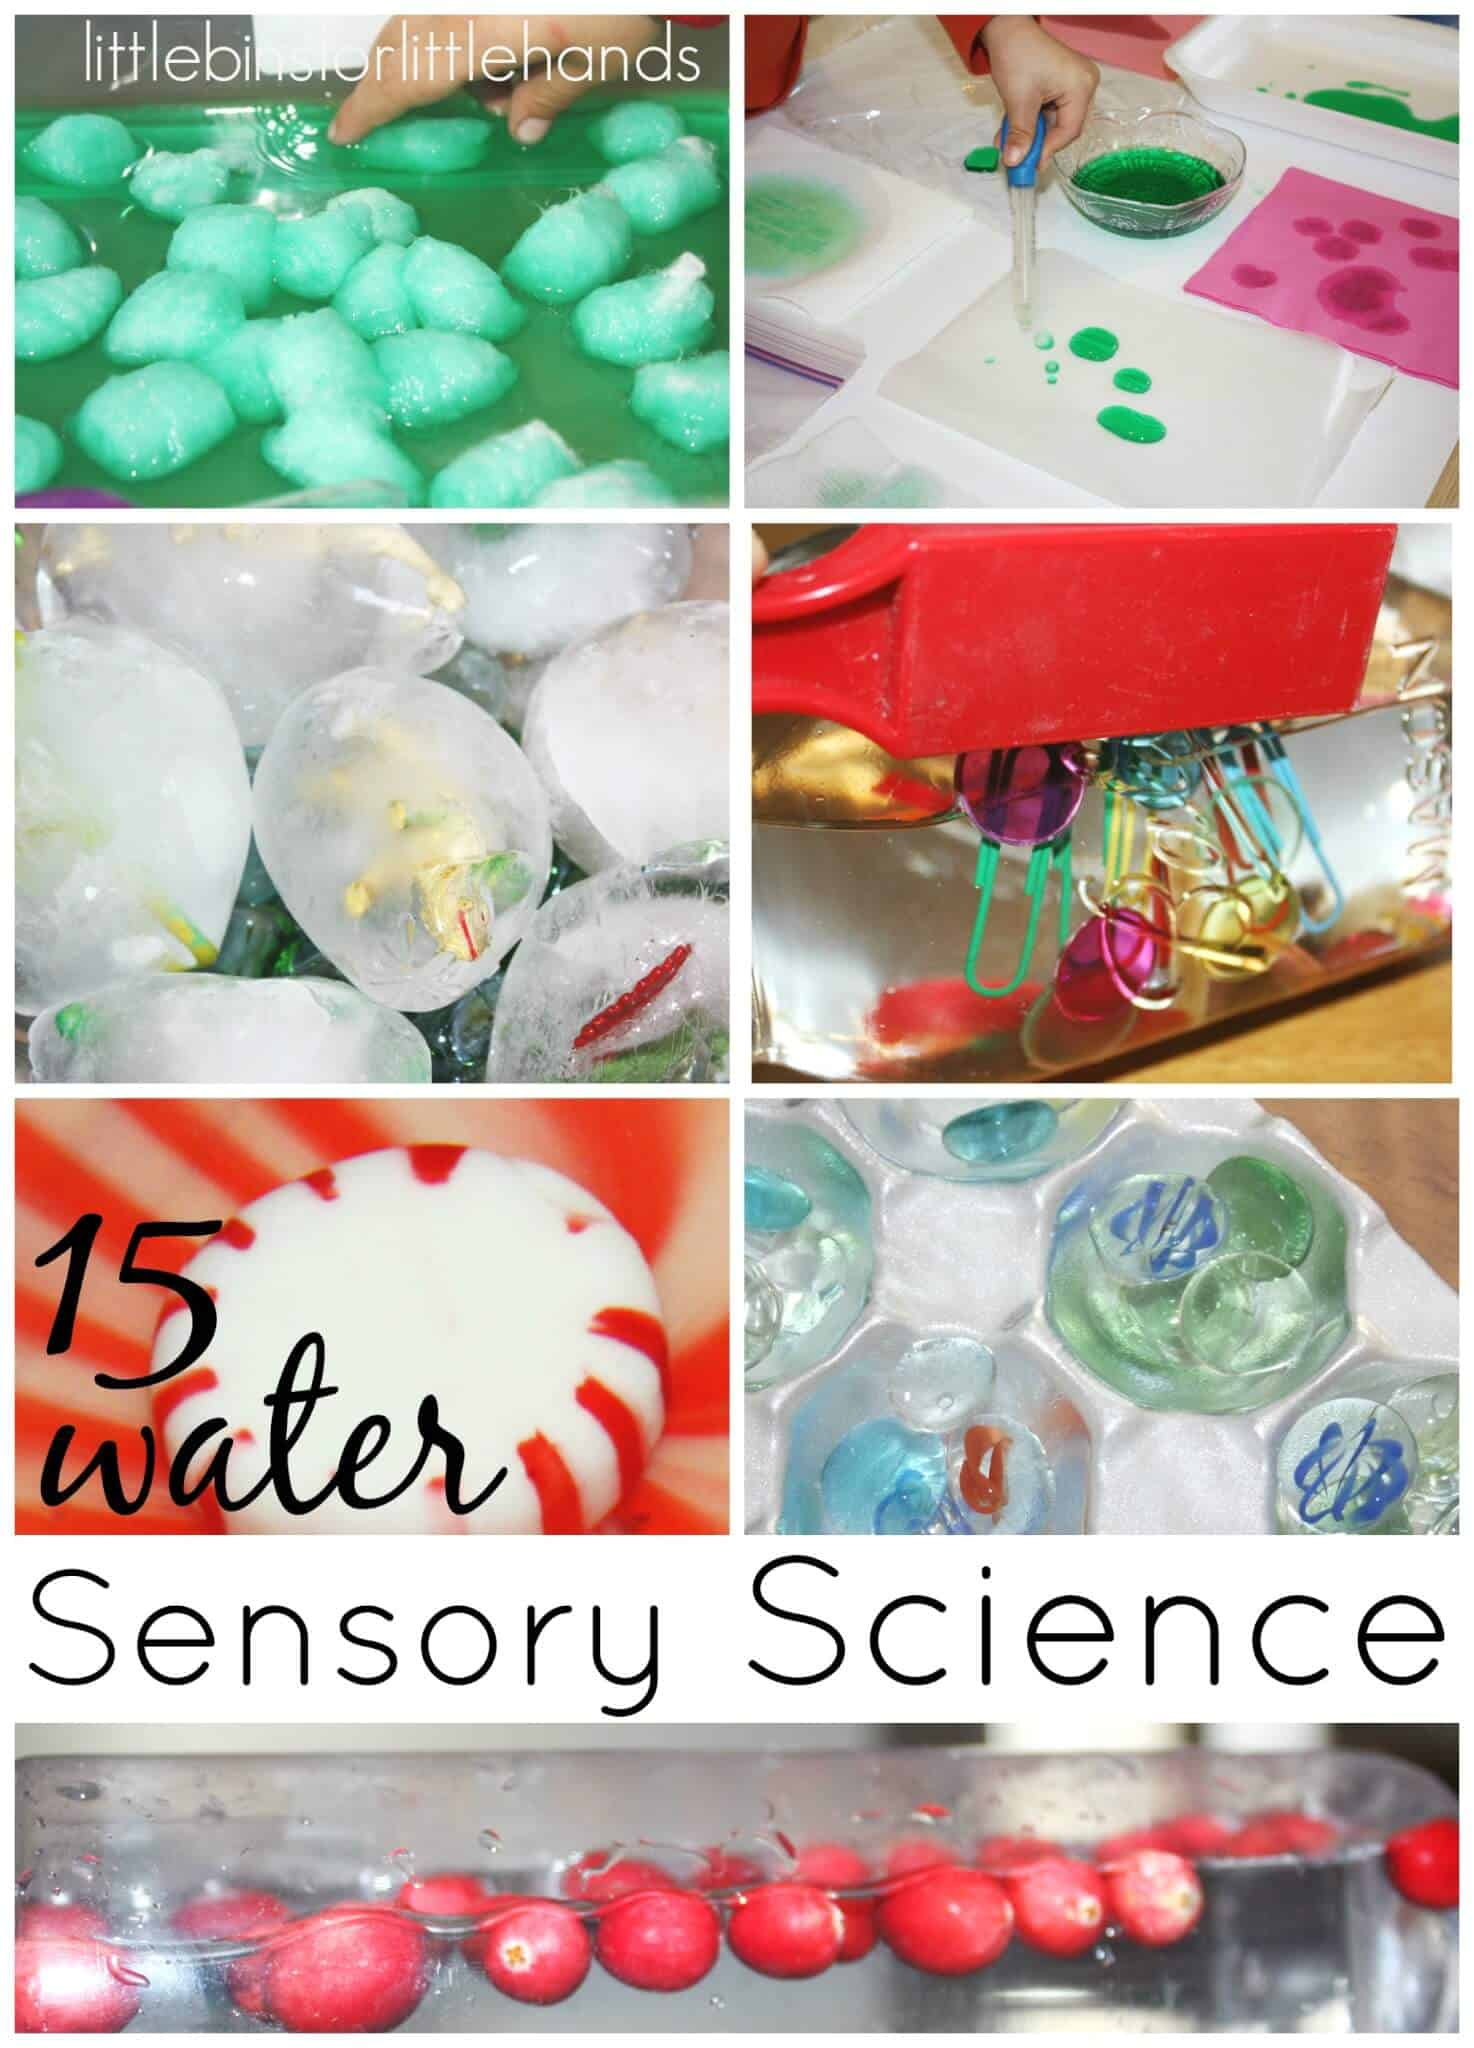 sensory activities for preschool water sensory science activities for early learning play 568